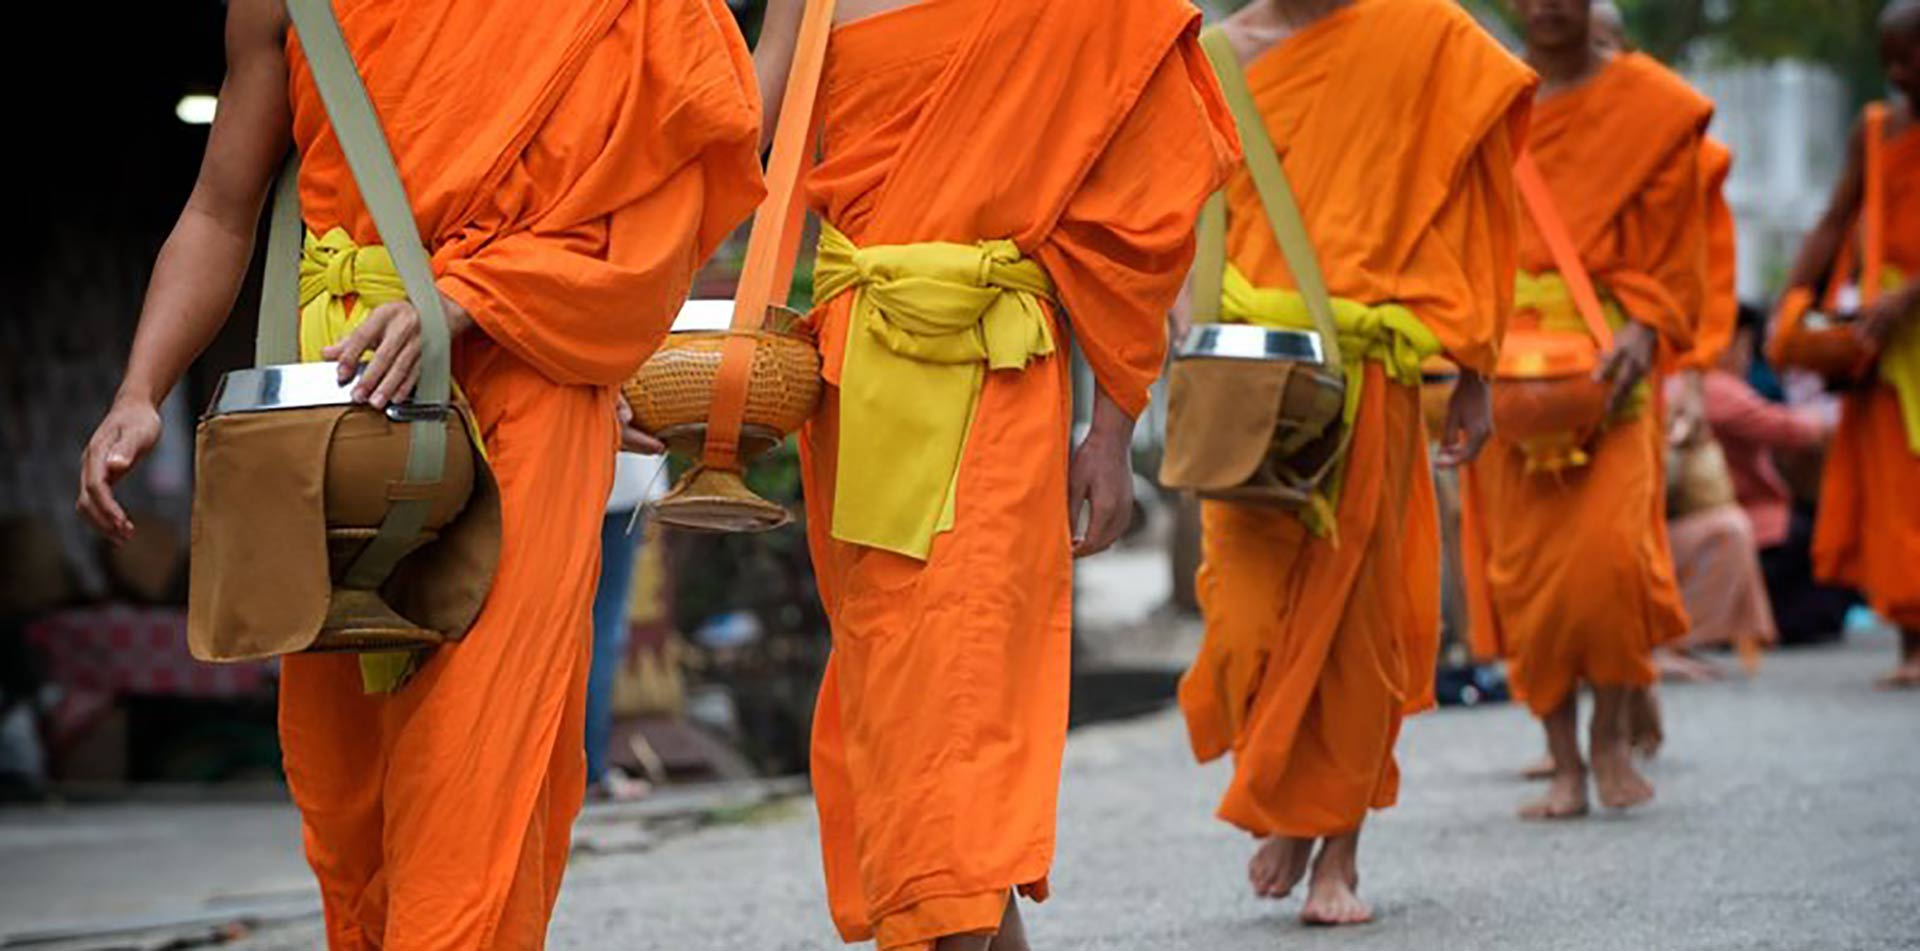 Asia Laos Luang Prabang Buddhist monks in orange participating in alms giving ceremony - luxury vacation destinations